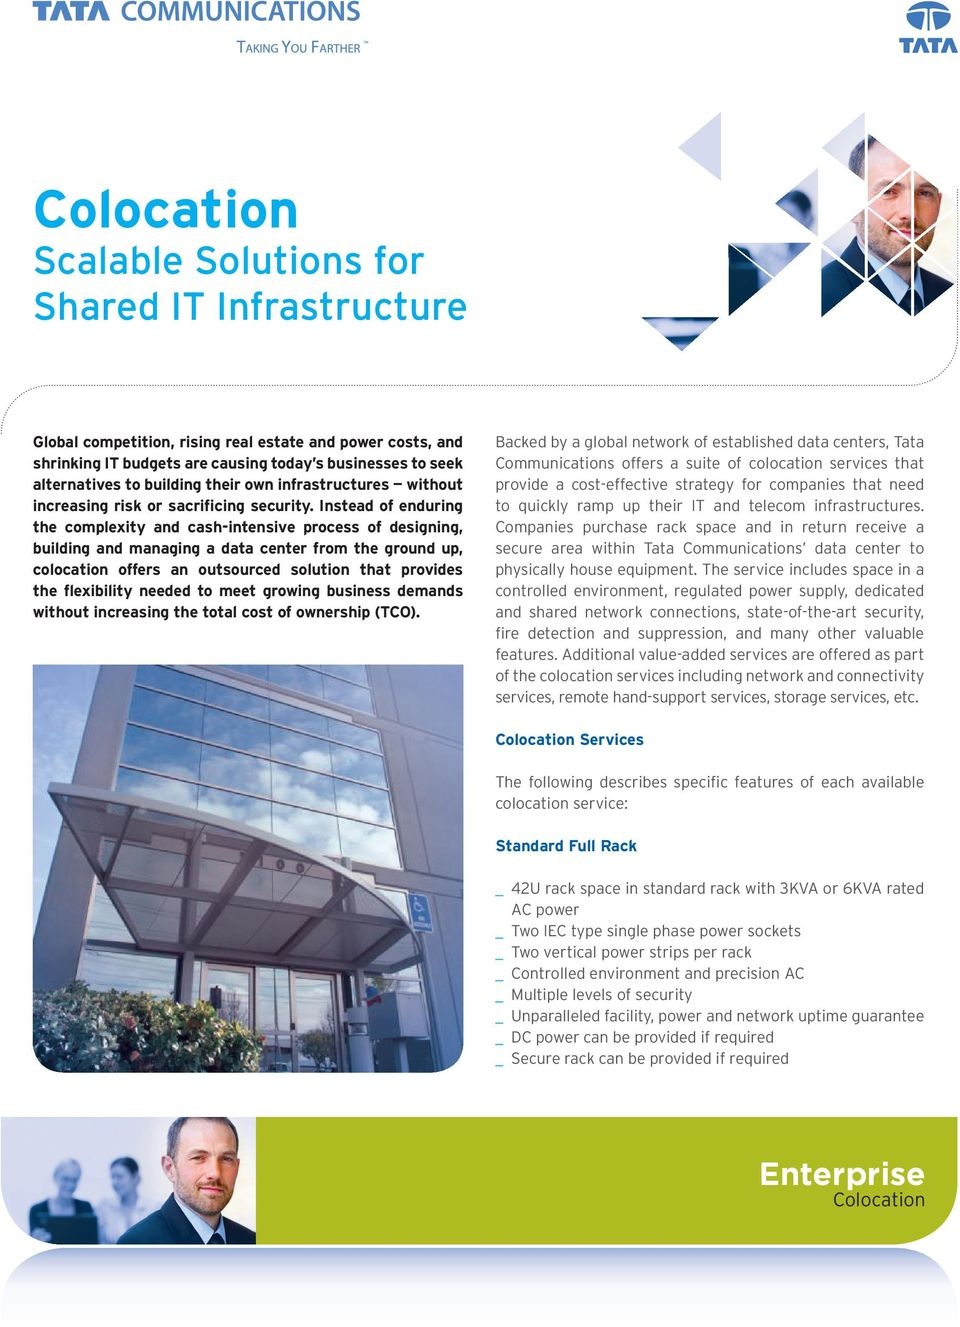 Instead of enduring the complexity and cash-intensive process of designing, building and managing a data center from the ground up, colocation offers an outsourced solution that provides the